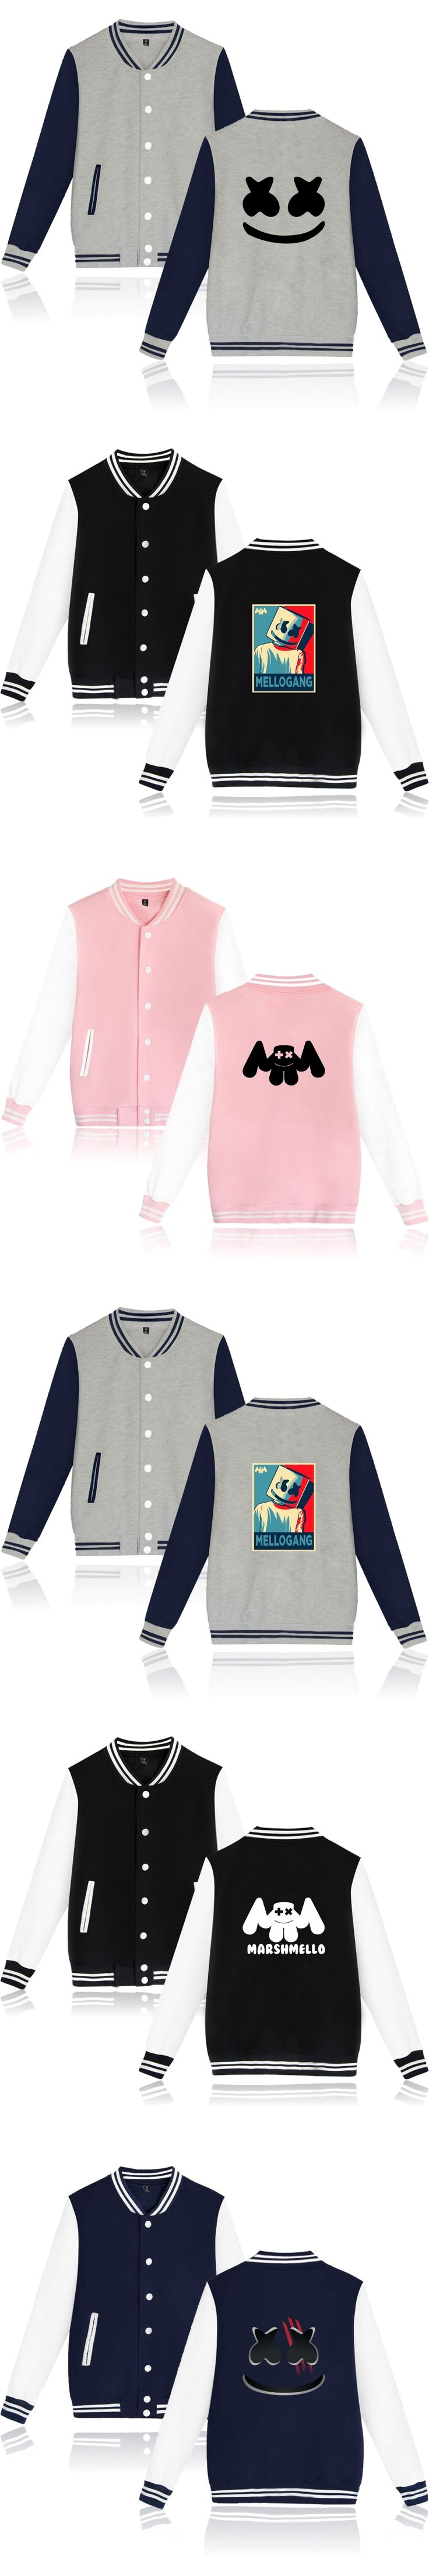 Marshmello jacket Print DIY Custom Logo Baseball Jackets Coat Cardigan Lovers Uniform Casual Brand Clothing Marshmello